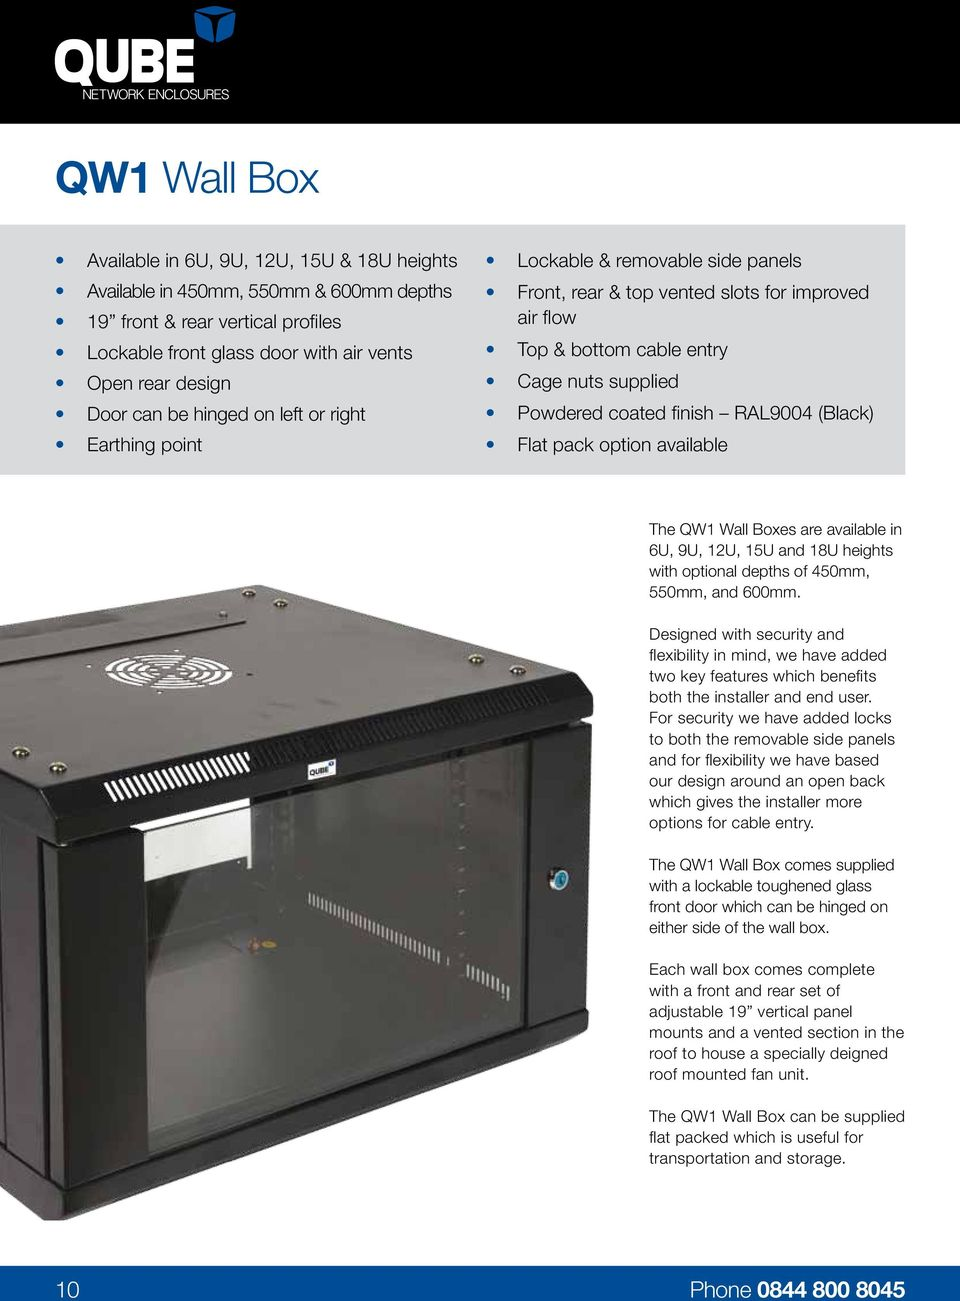 RAL9004 (Black) Flat pack option available The QW1 Wall Boxes are available in 6U, 9U, 12U, 15U and 18U heights with optional depths of 450mm, 550mm, and 600mm.